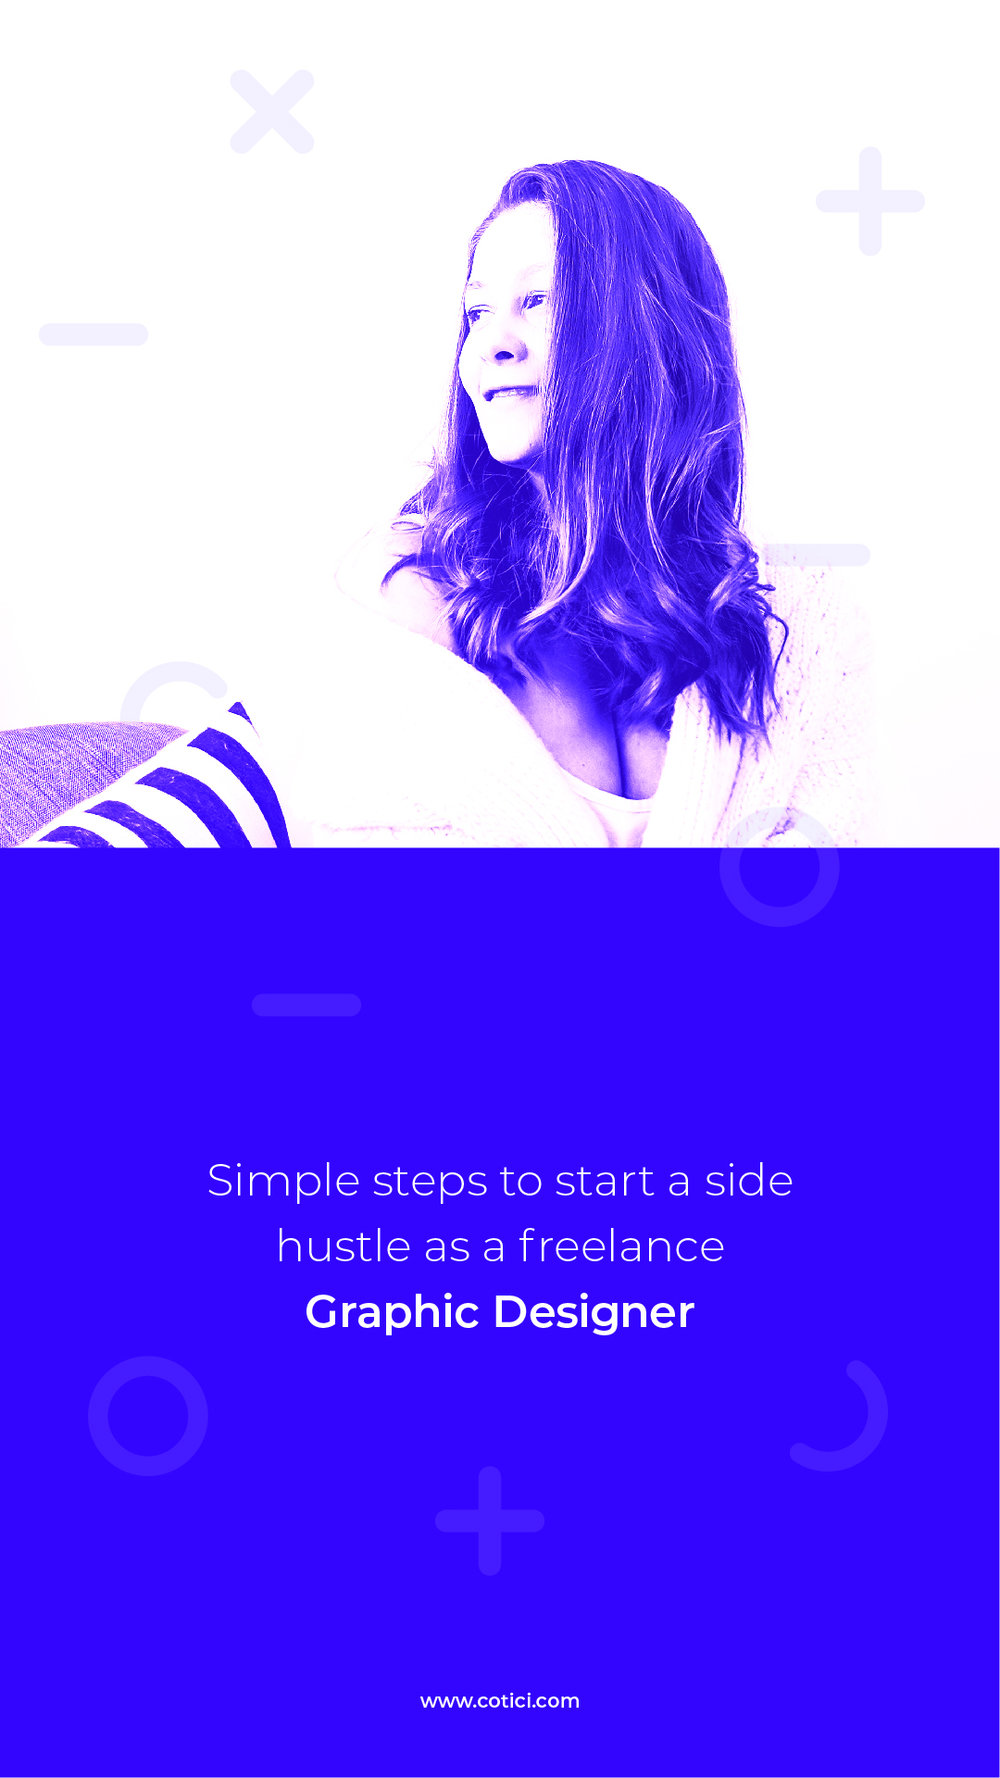 New year, New side hustle. Simple Steps to start a side hustle as a freelance graphic designer.jpg